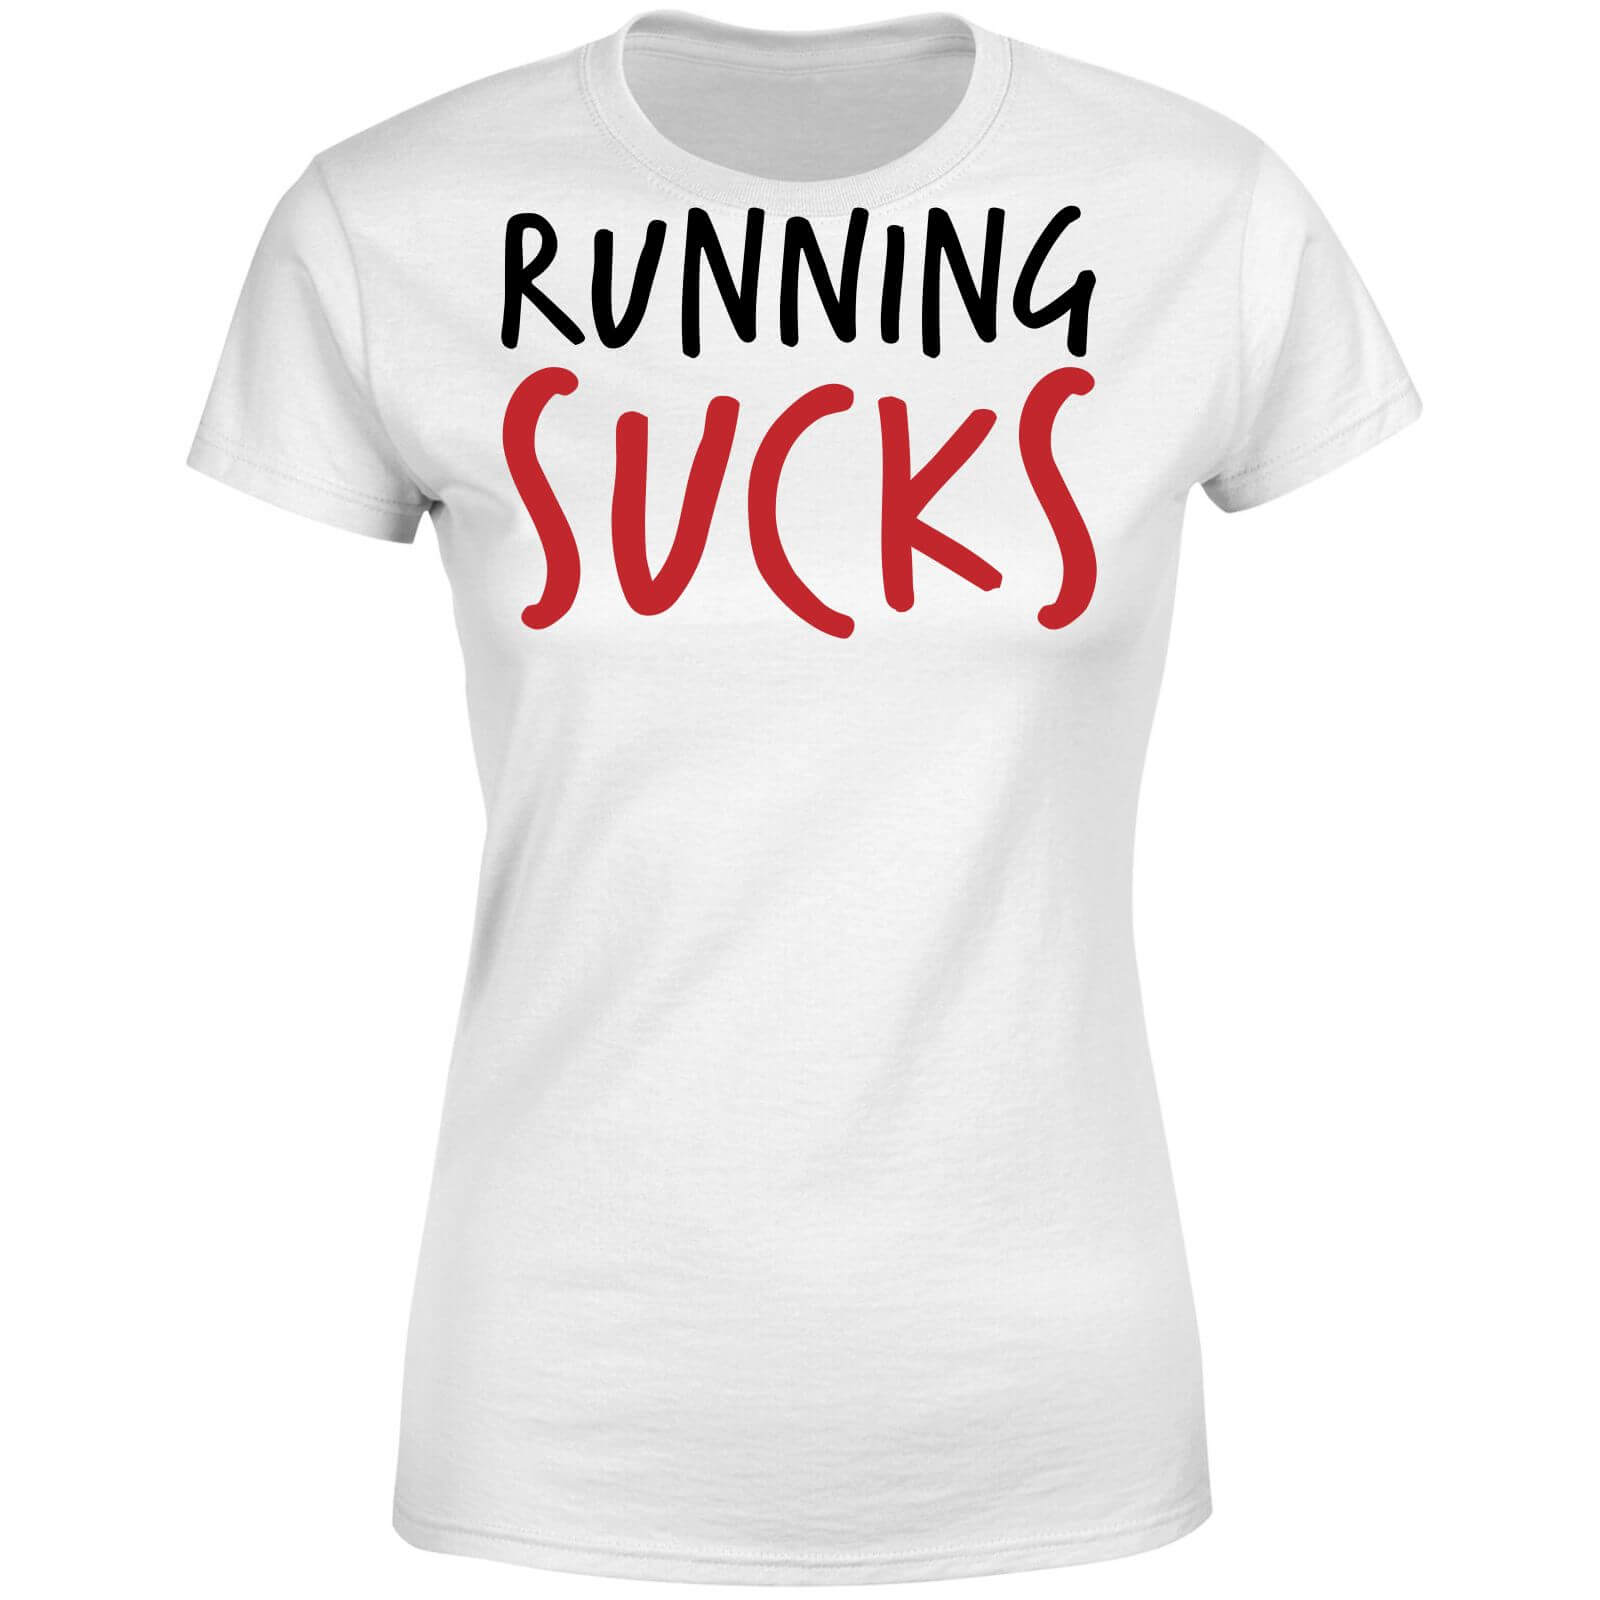 Running Sucks Women